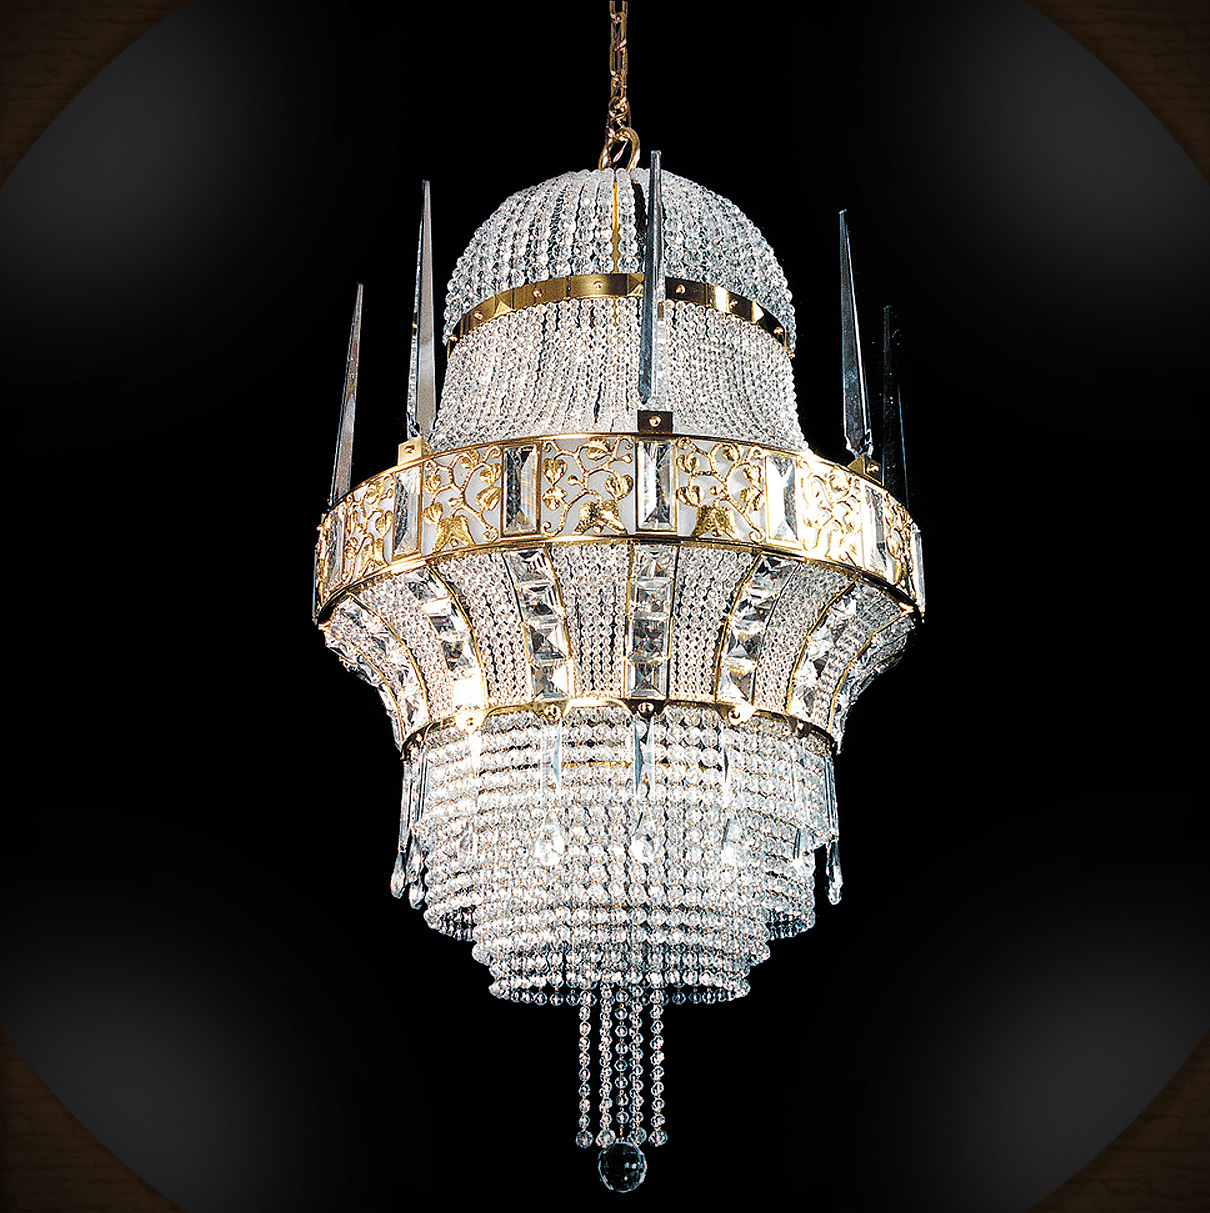 i do not care 4 this chandelier i think it is tacky.